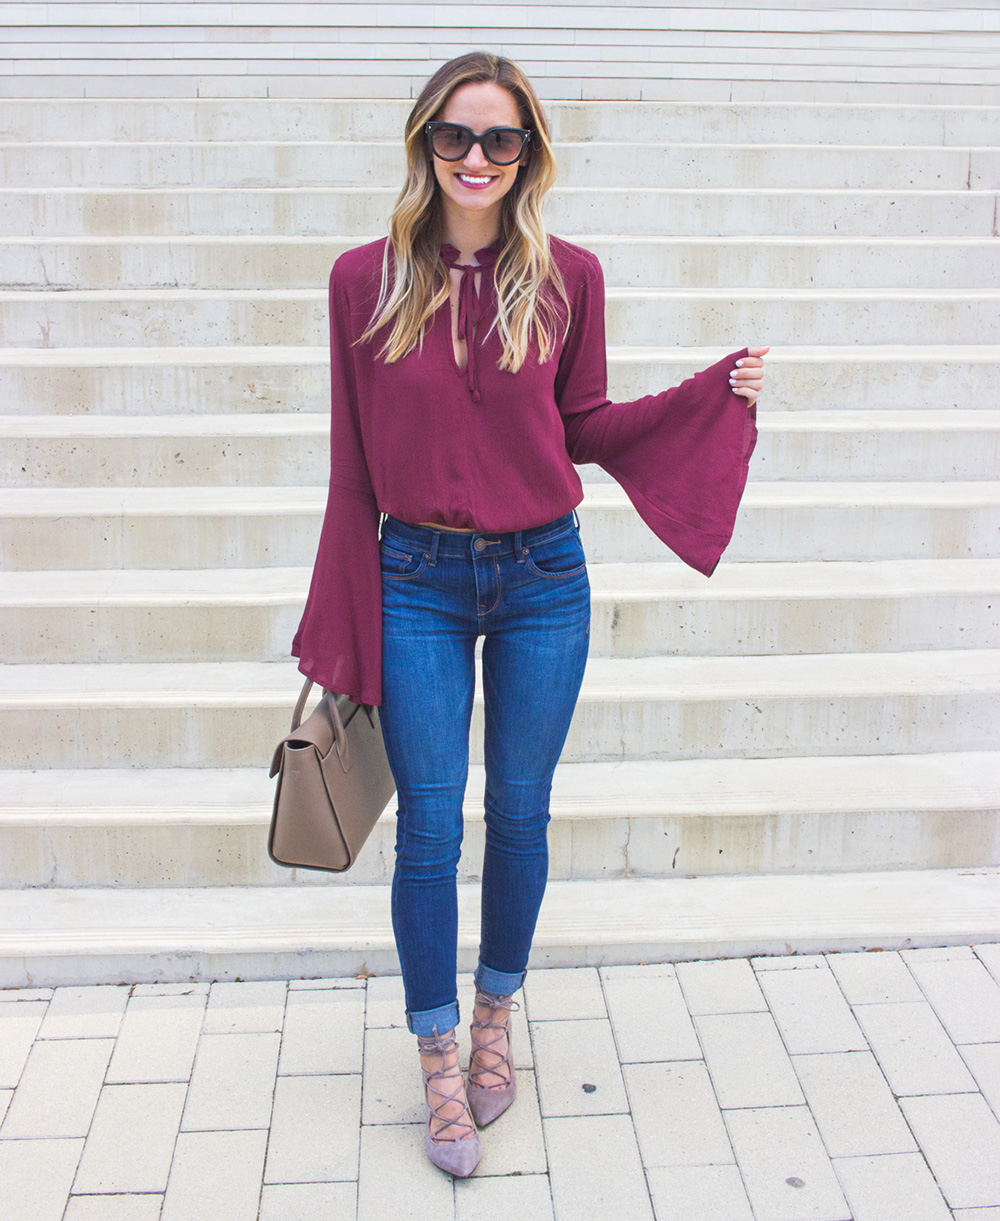 livvyland-blog-olivia-watson-fall-outfit-lace-up-heels-bell-sleeve-oxblood-top-austin-texas-fashion-blogger-6